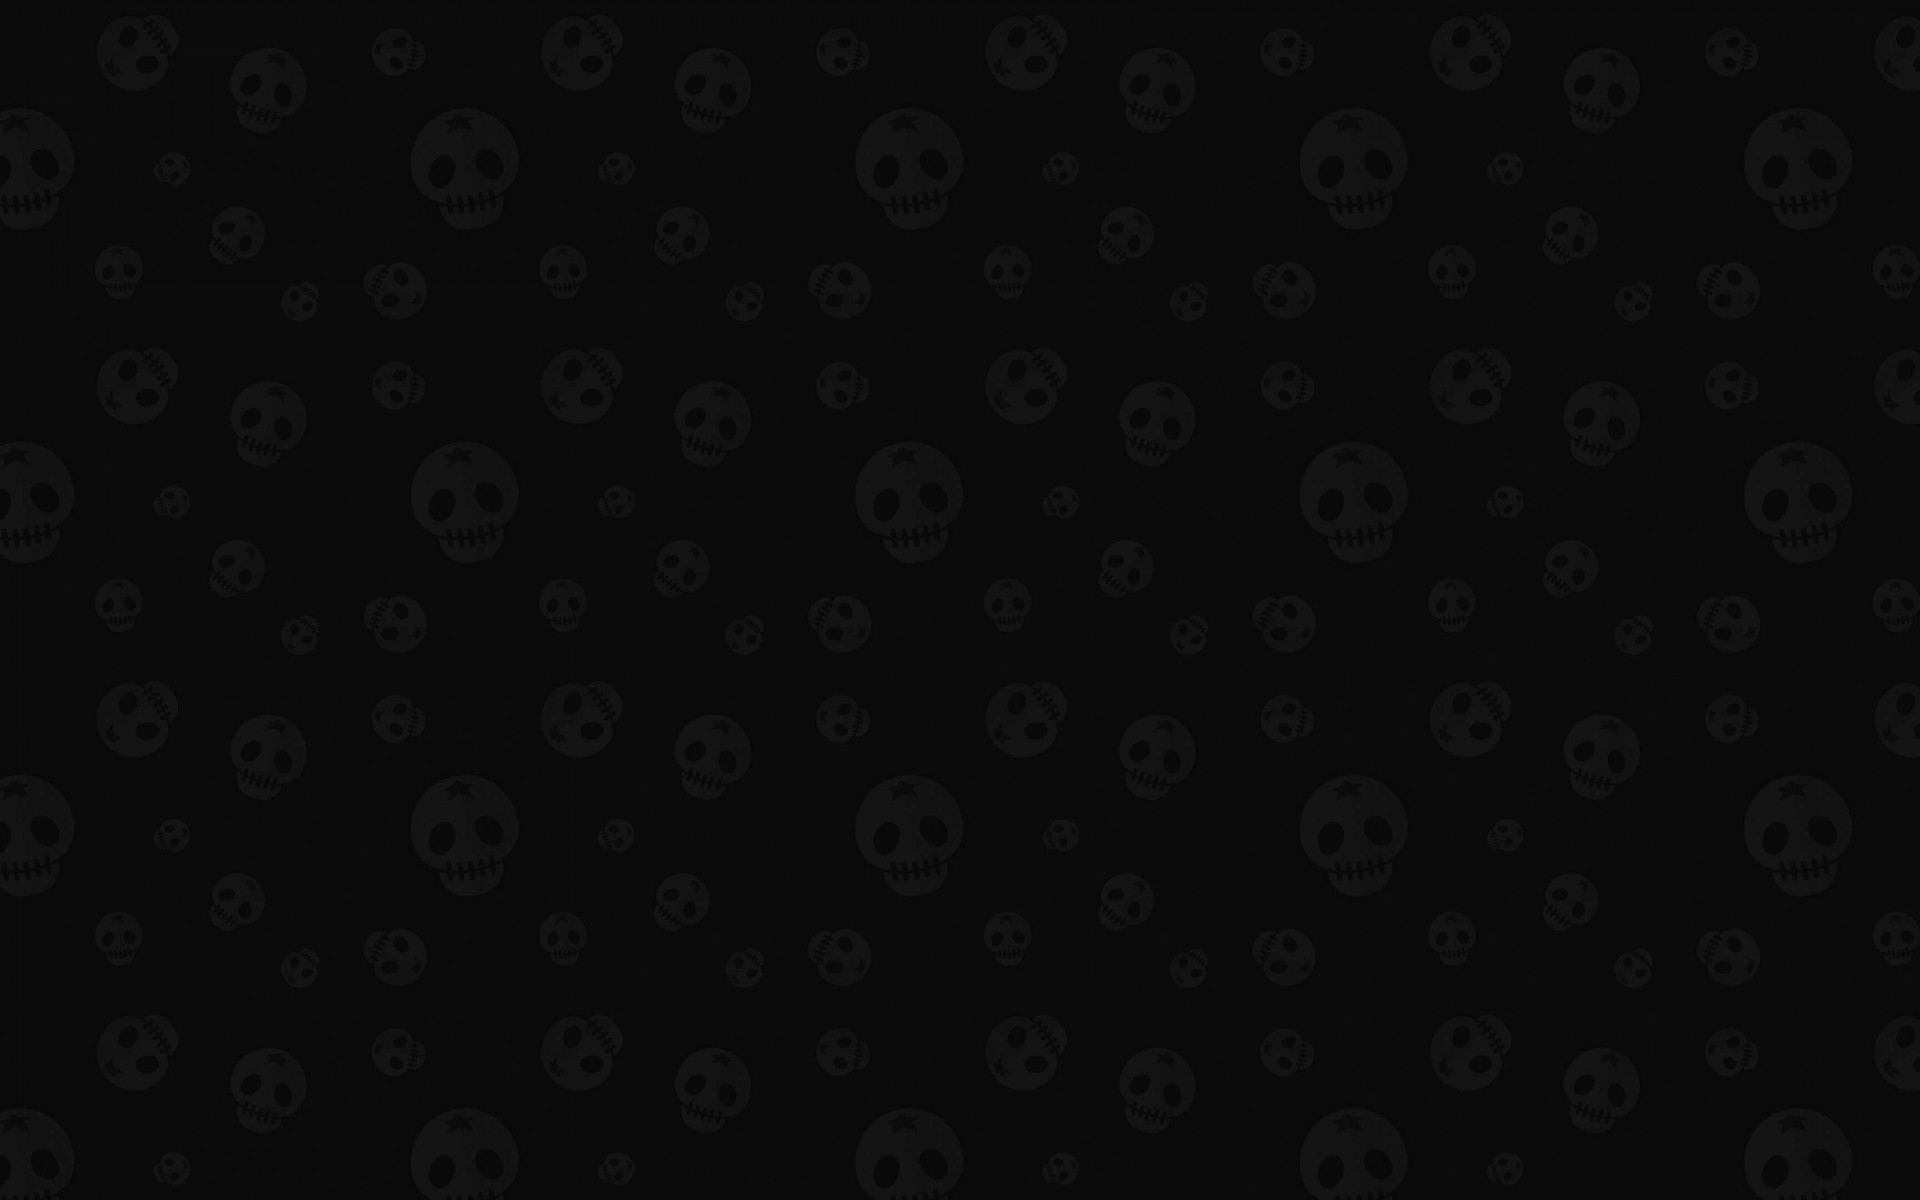 Star Skull Pattern Wallpaper for Desktop 1920x1200